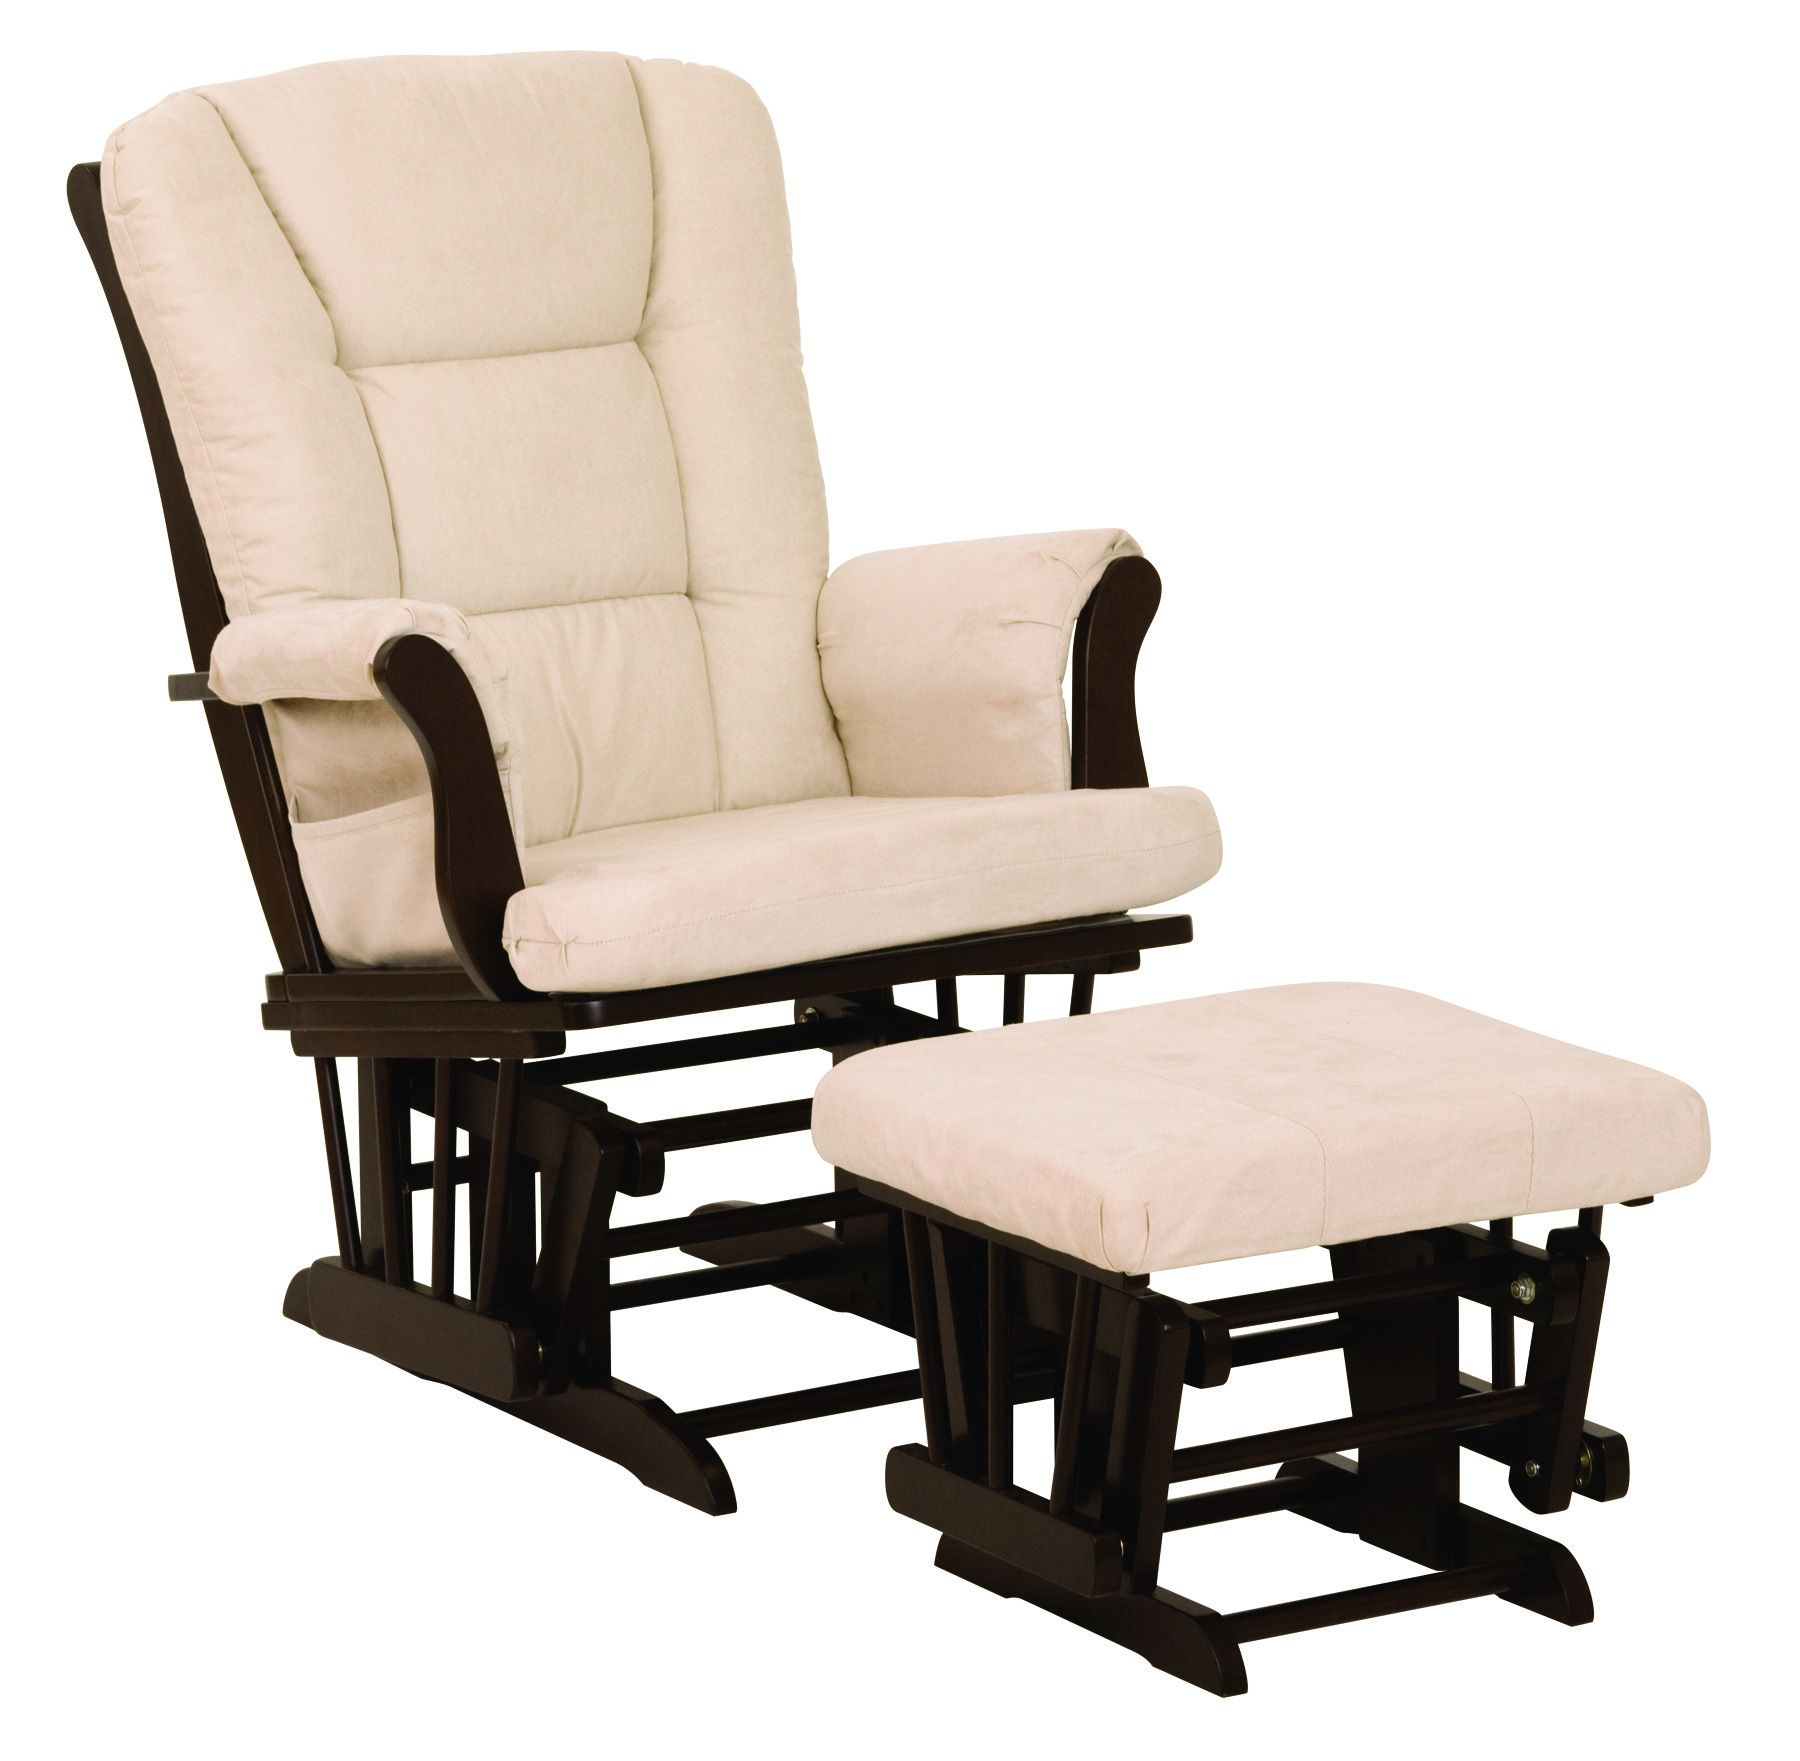 A glider and ottoman set Glider and ottoman, Glider